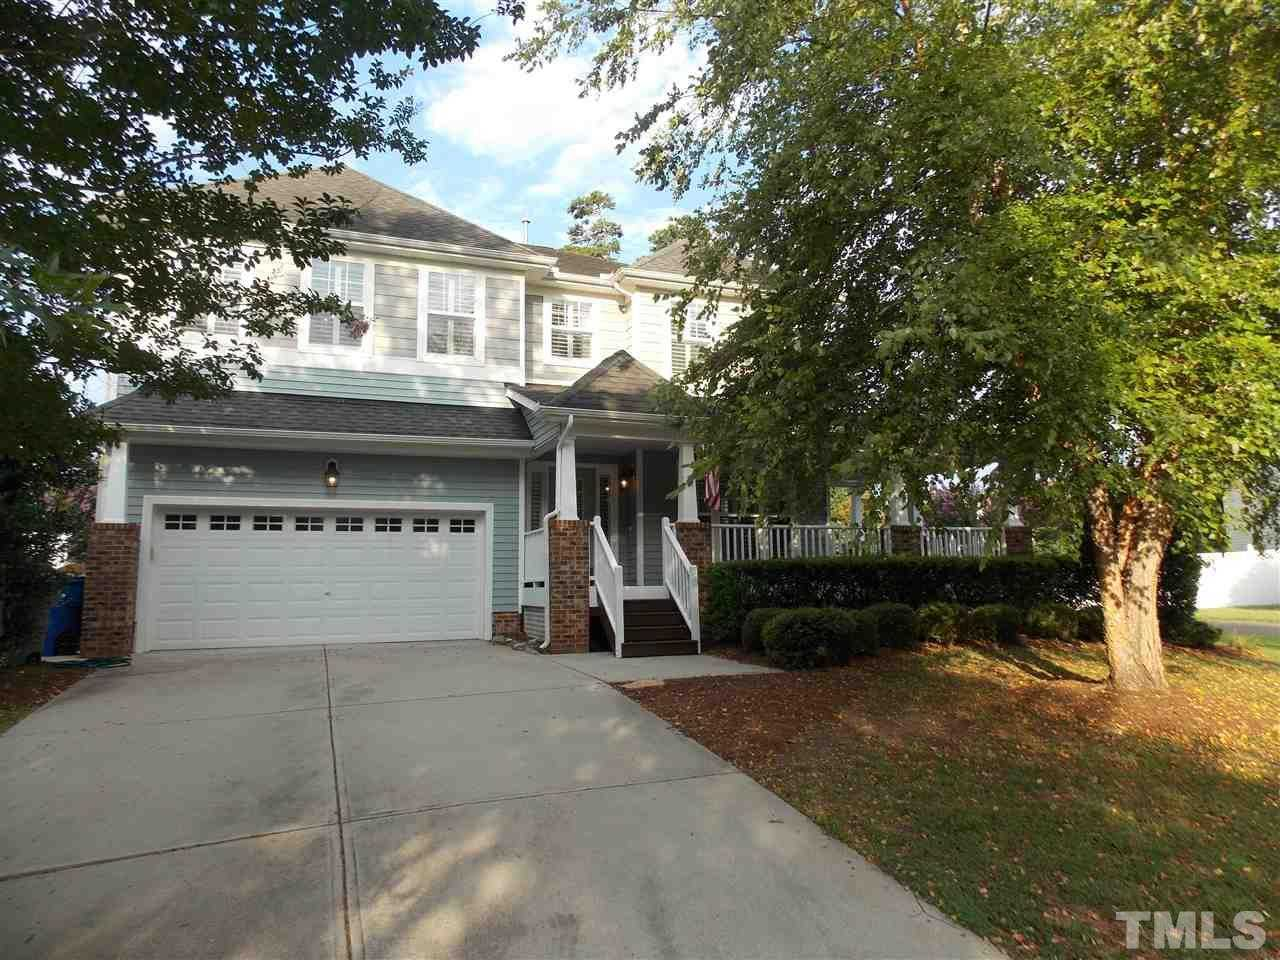 $2,875 - 4Br/4Ba -  for Sale in Bedford At Falls River, Raleigh